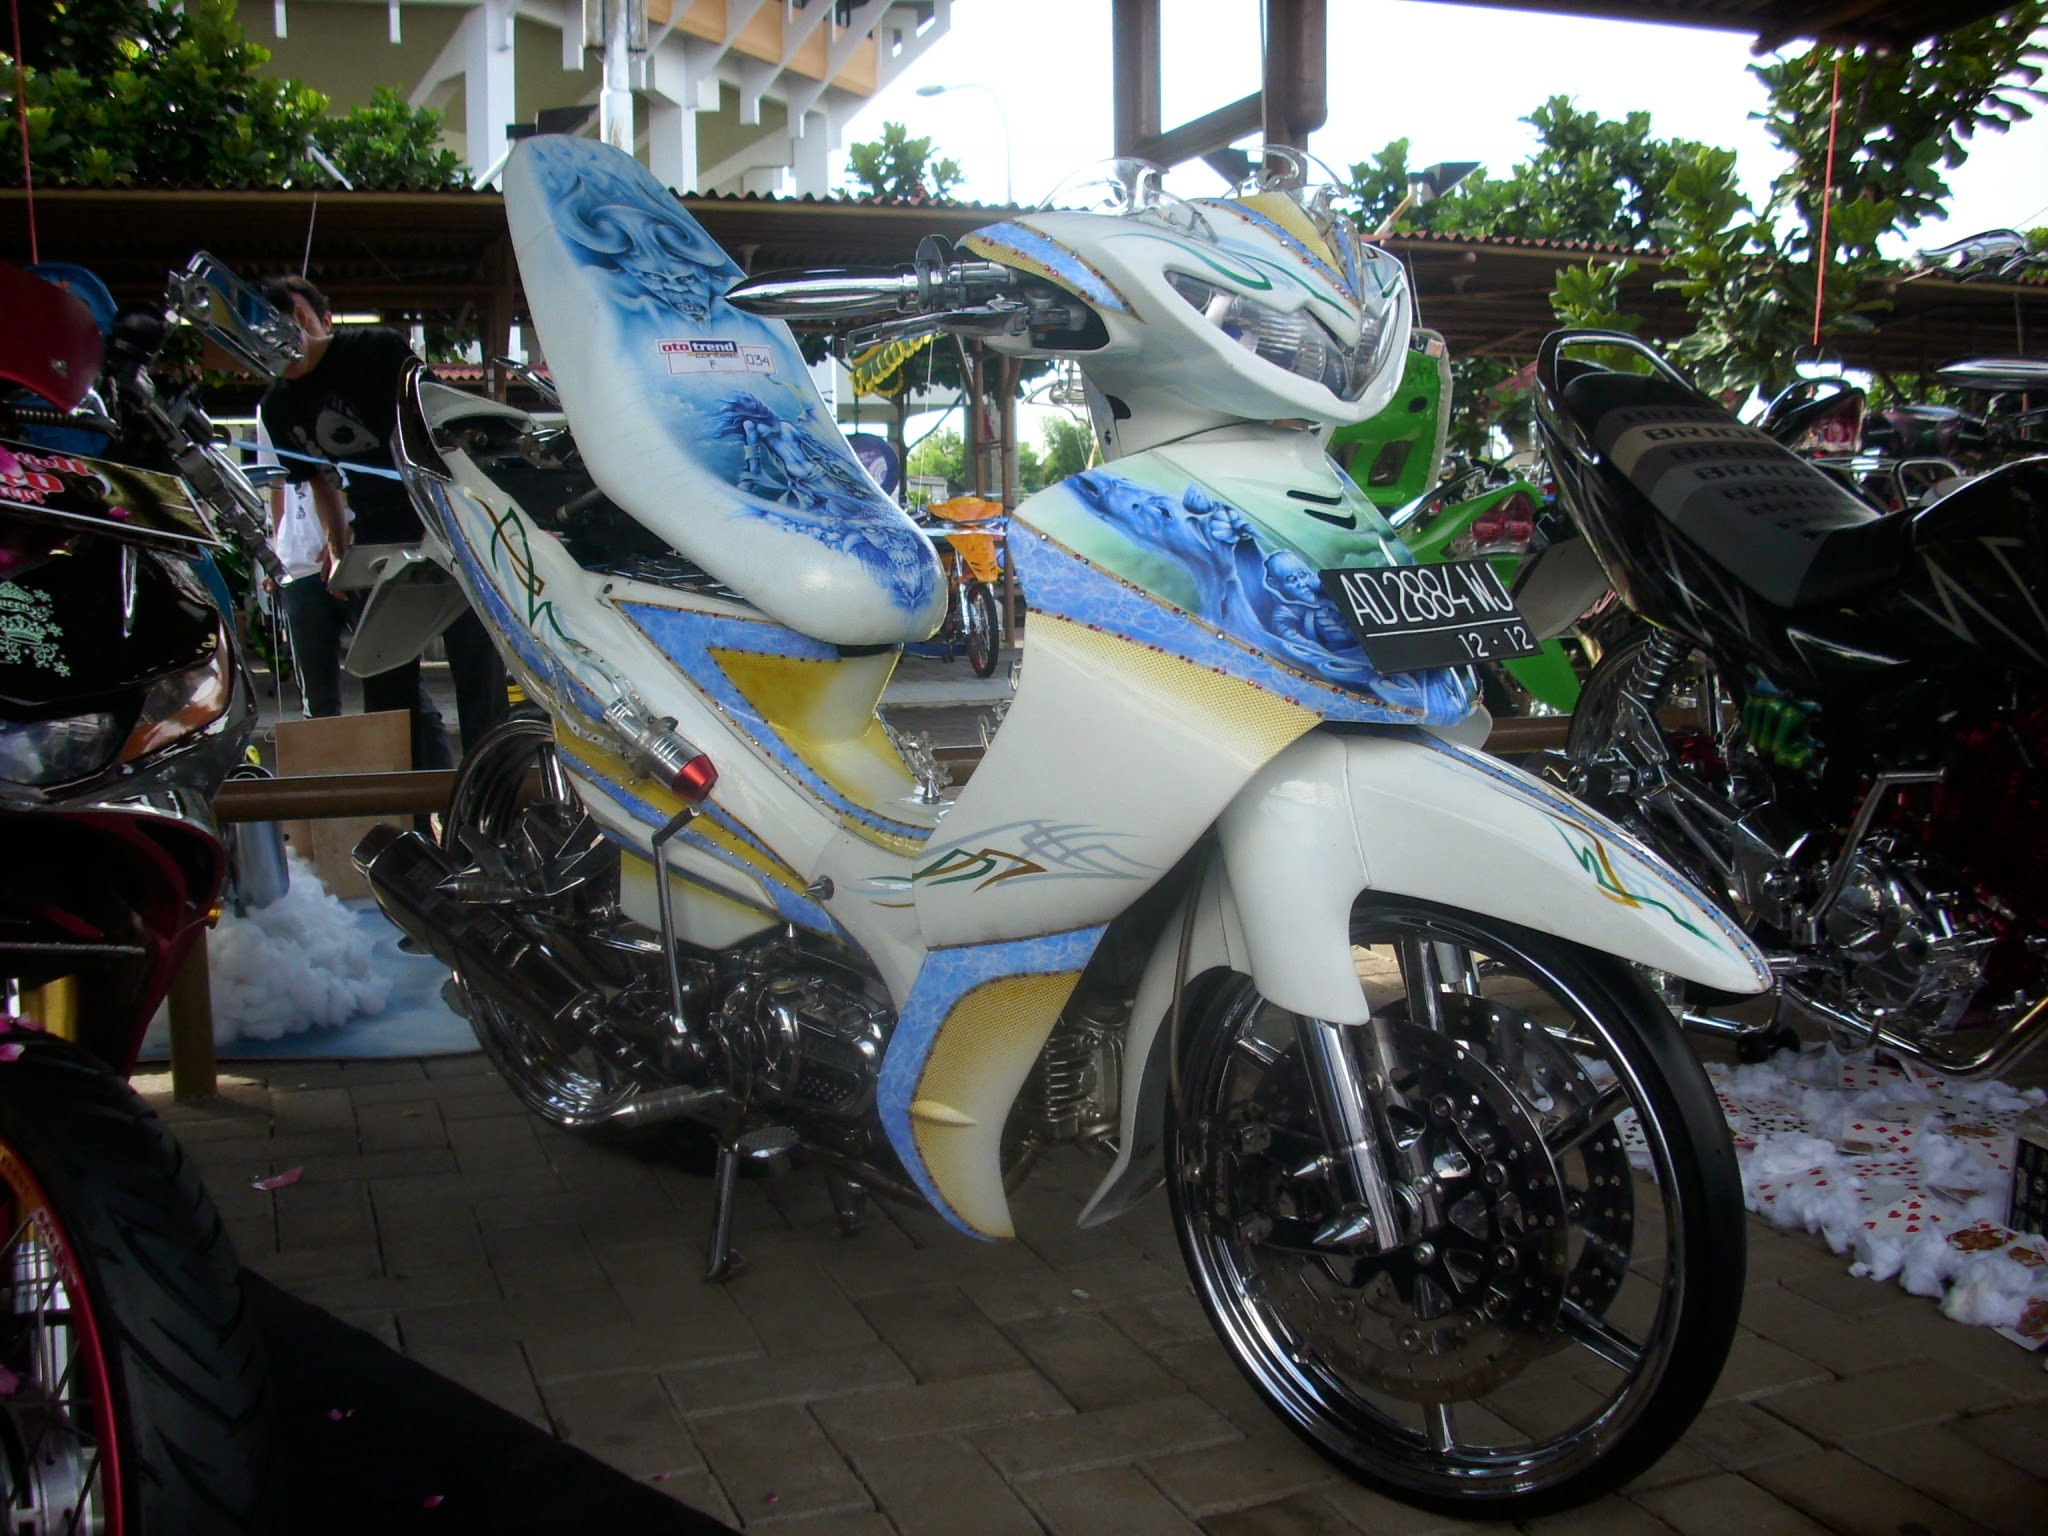 Jupiter Mx Modifikasi Warna Biru Putih